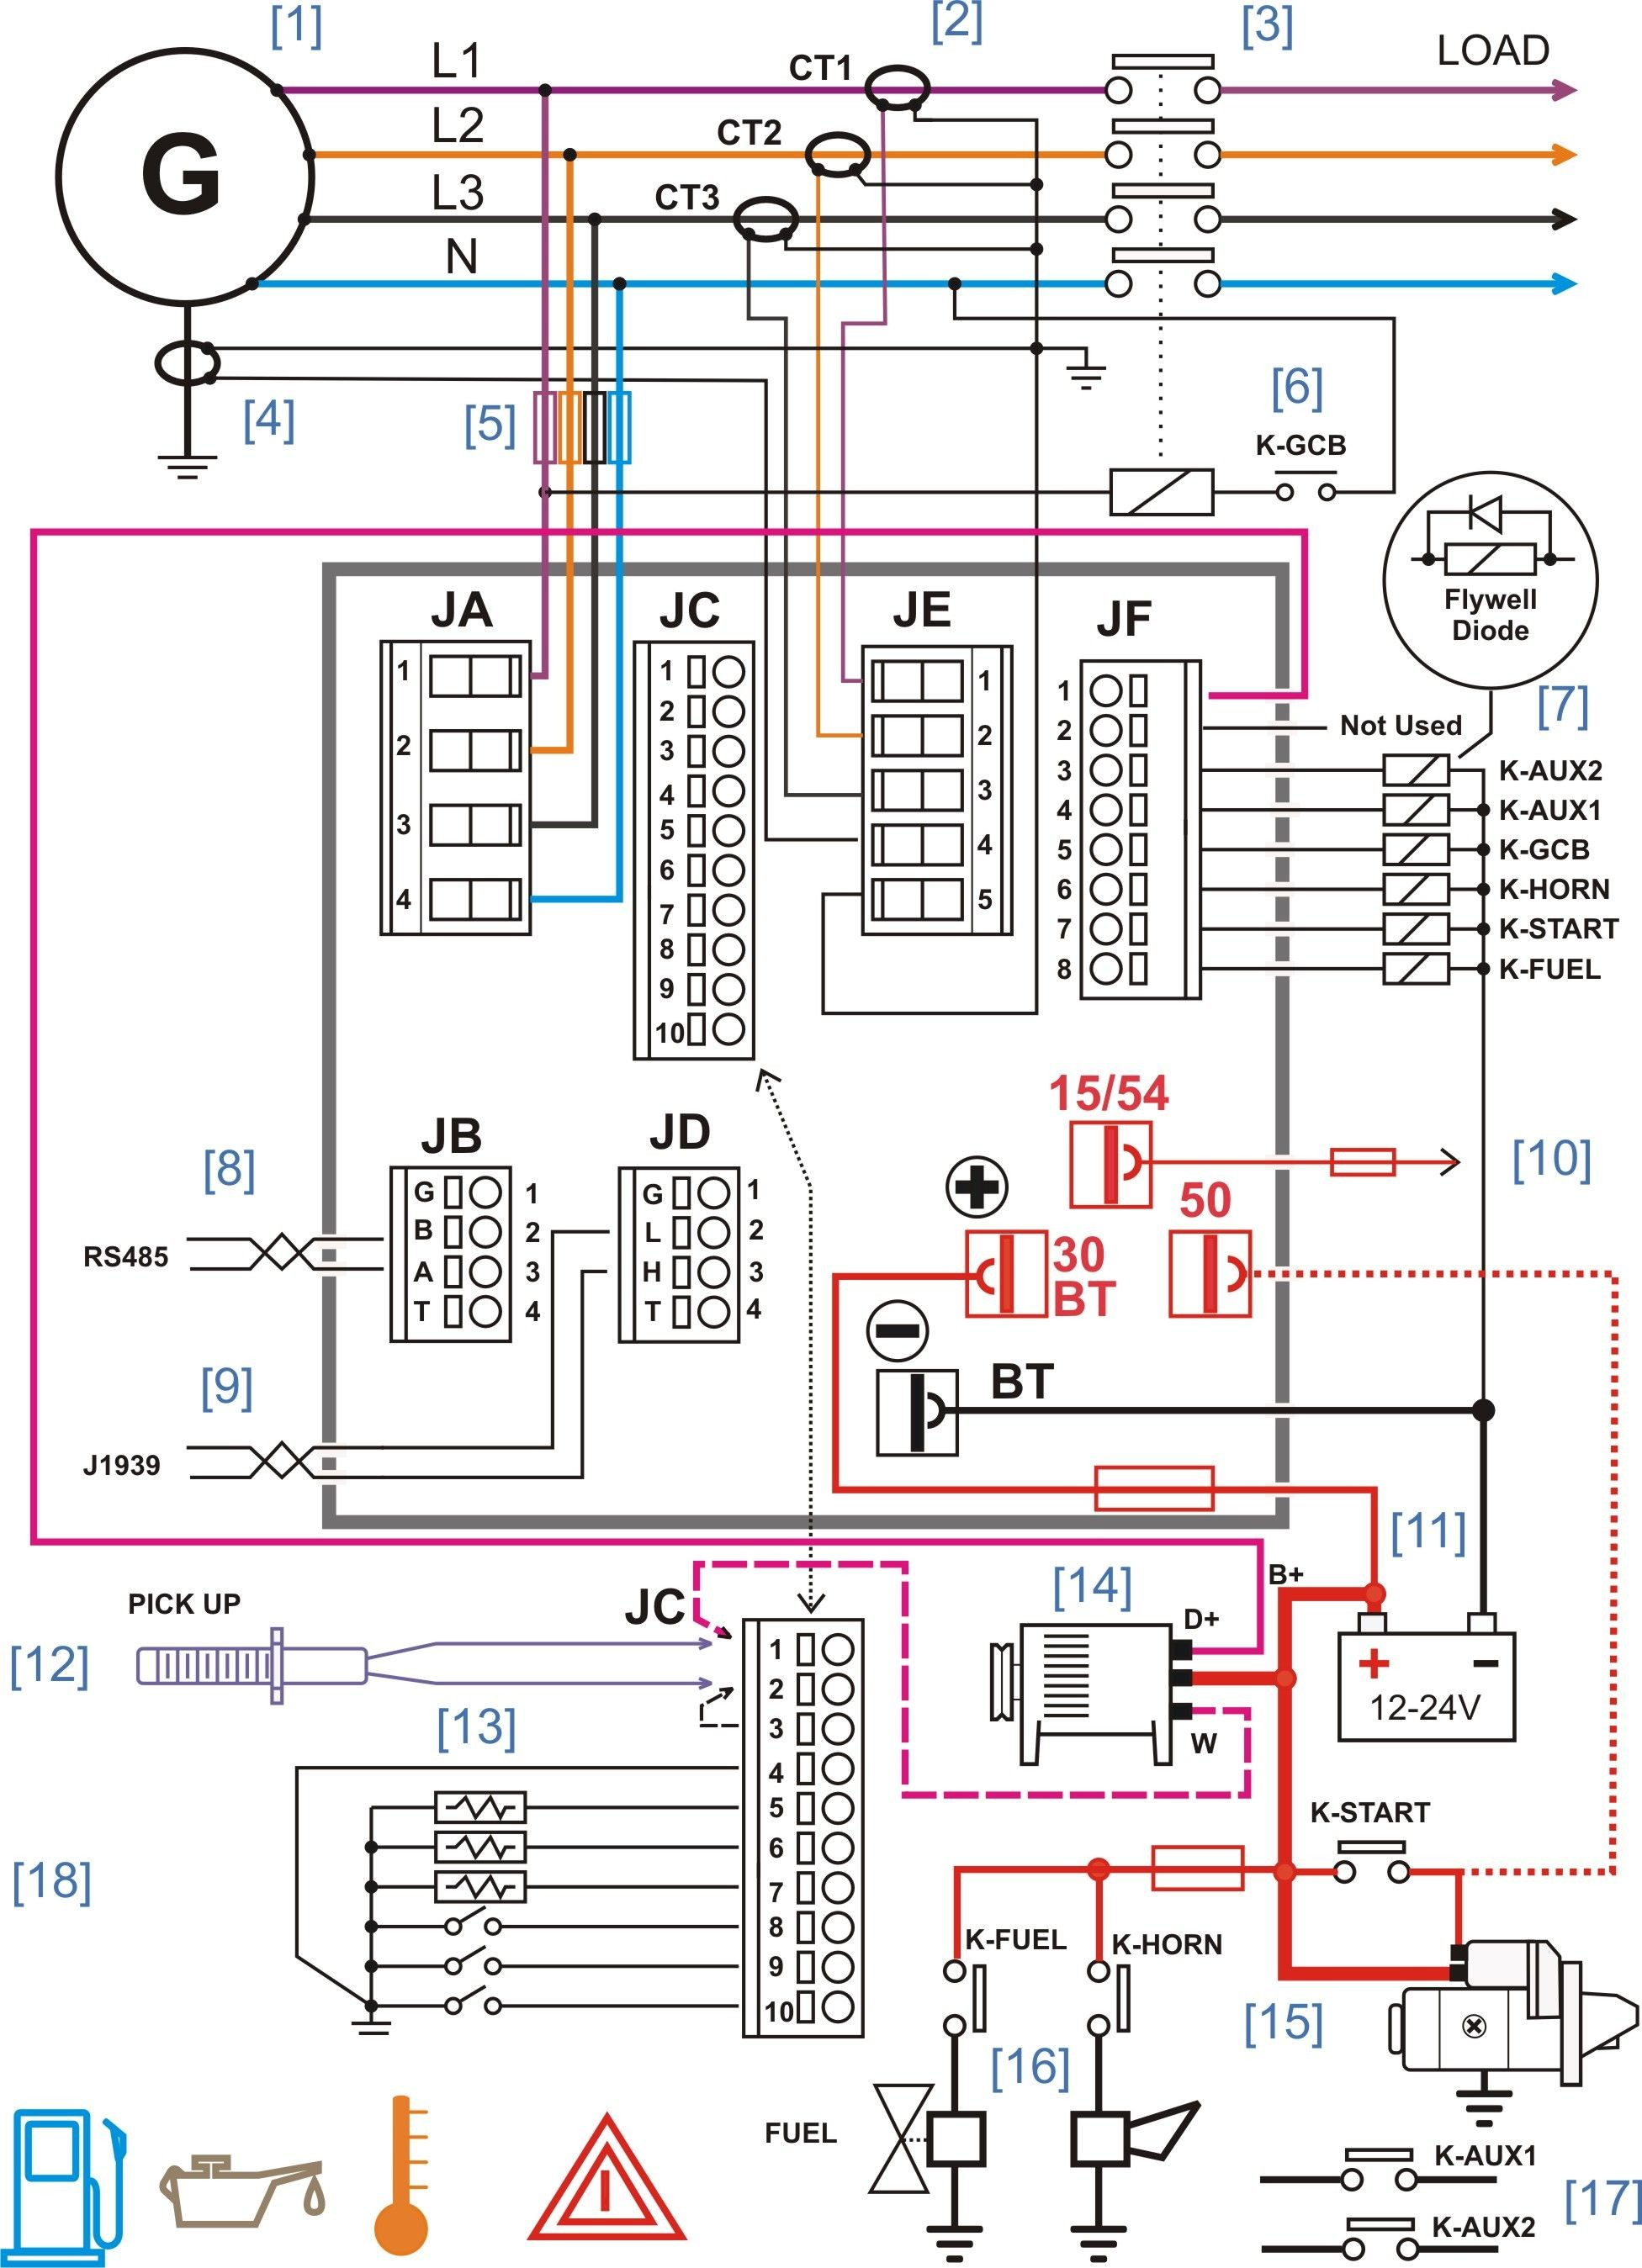 Car Electrical System Diagram Diesel Generator Control Panel Wiring Diagram Of Car Electrical System Diagram Diesel Generator Control Panel Wiring Diagram